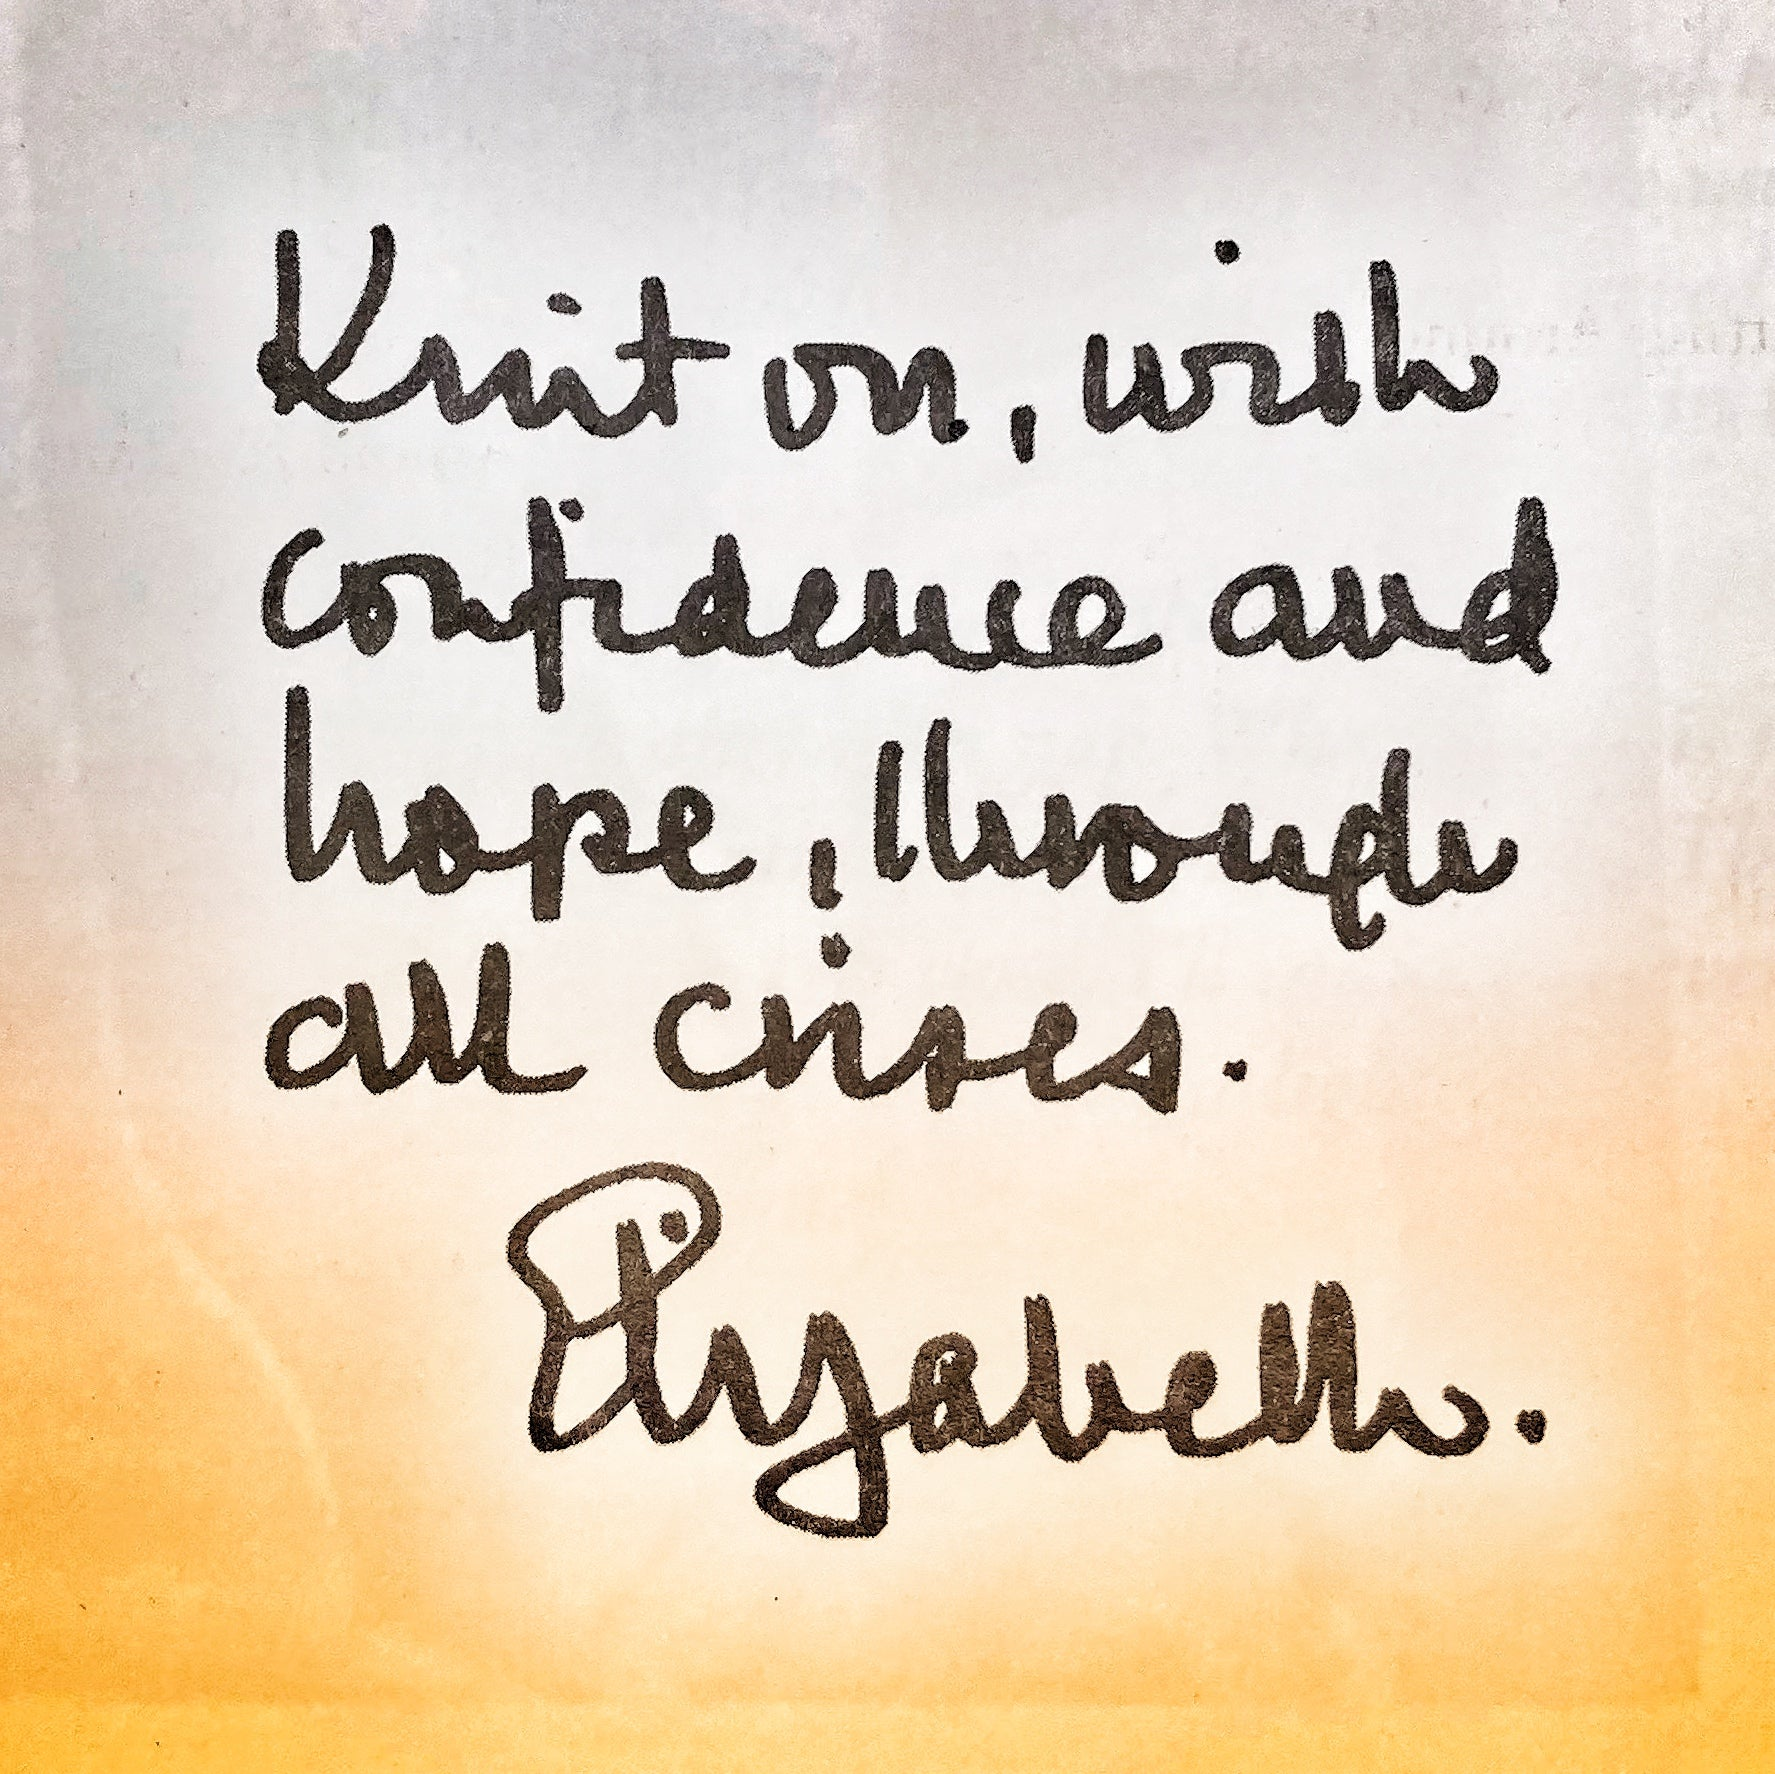 Knit on, with confidence and hope, through all crises. --Elizabeth Zimmermann